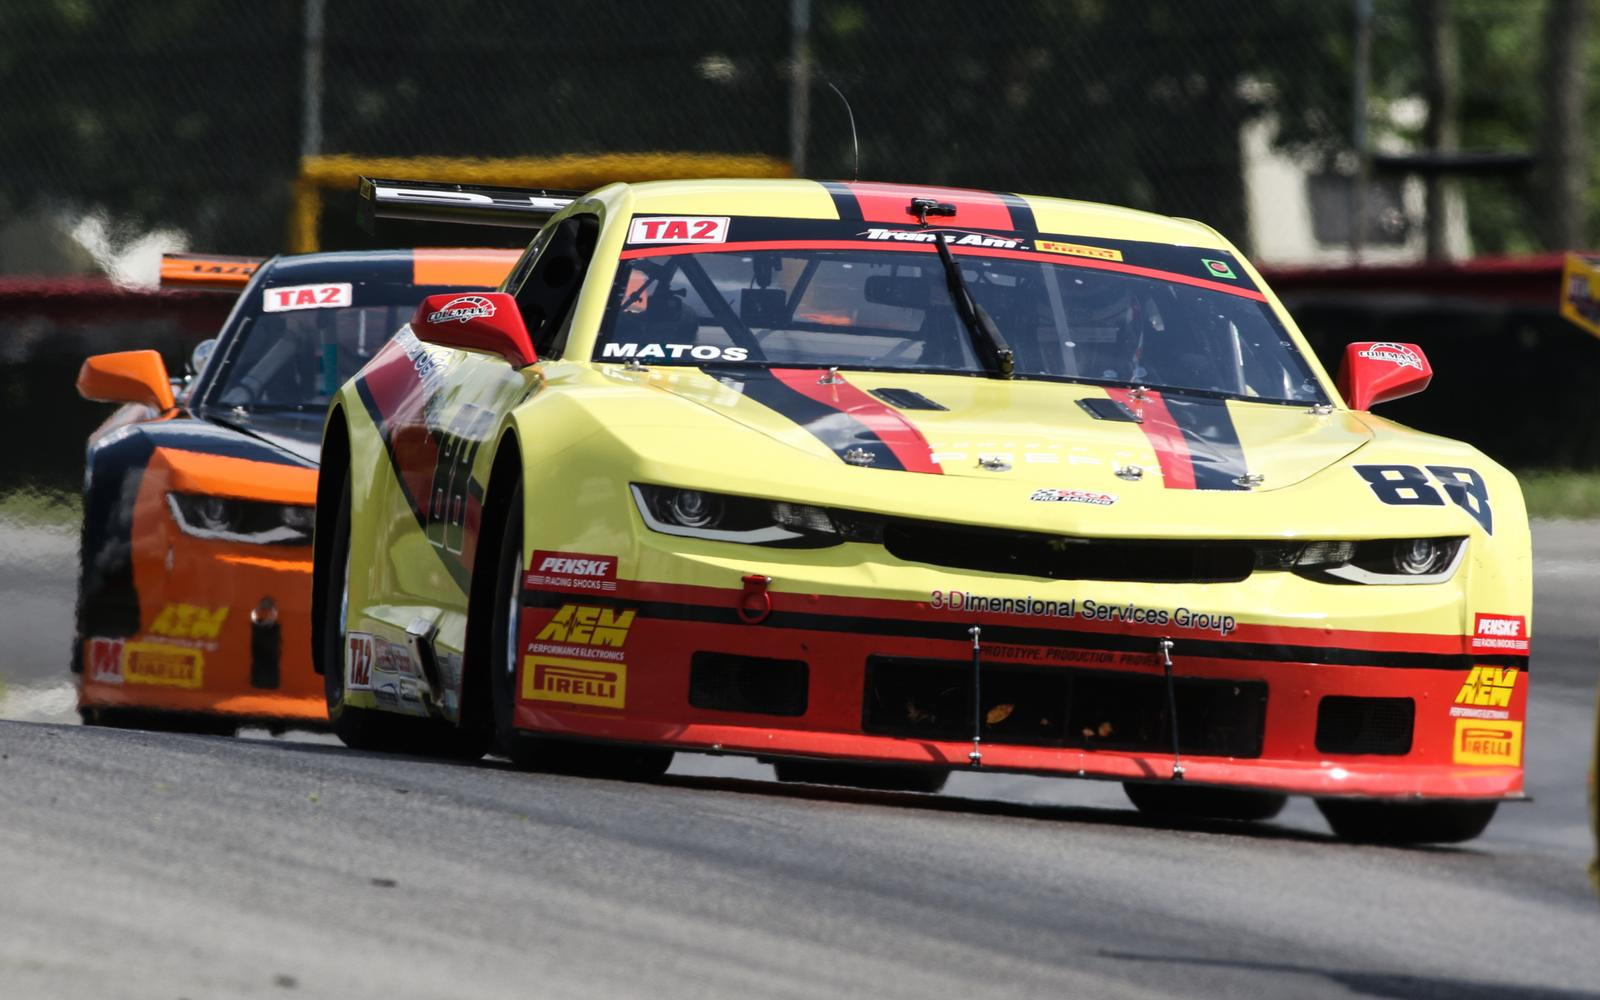 Trans Am at Mid-Ohio: Matos Takes Second Trans Am Pole of 2019 in Wild Qualifying